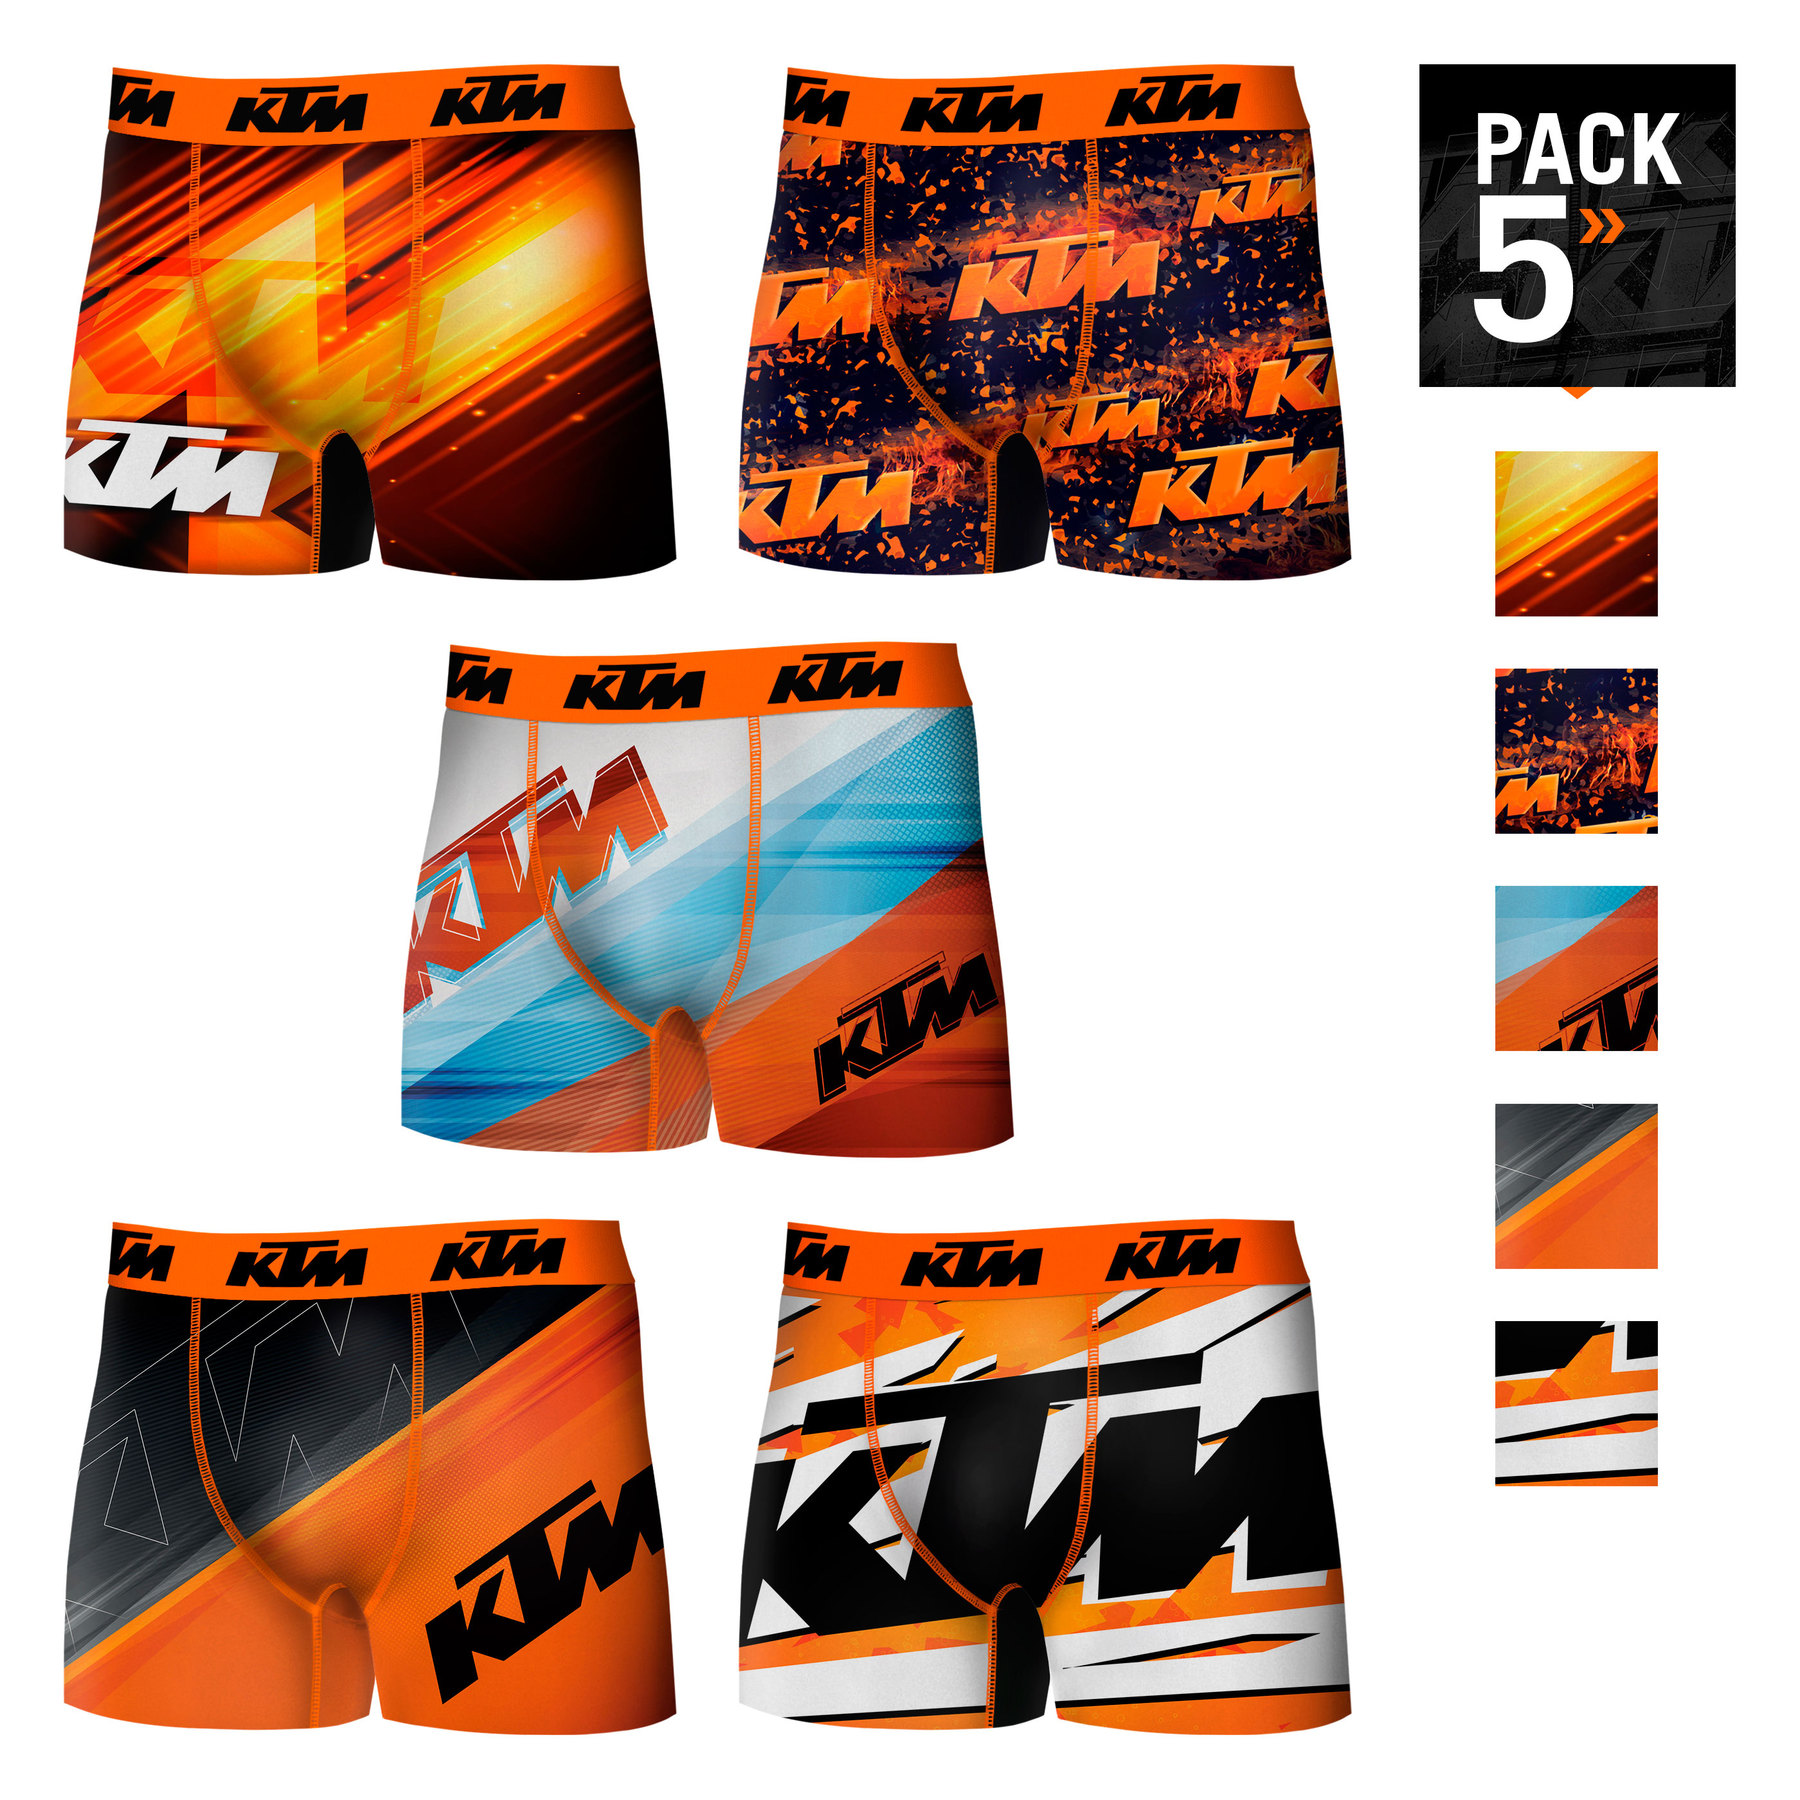 KTM Boxers Pack 5 Units Shocker Or Single Type Boxer For Men